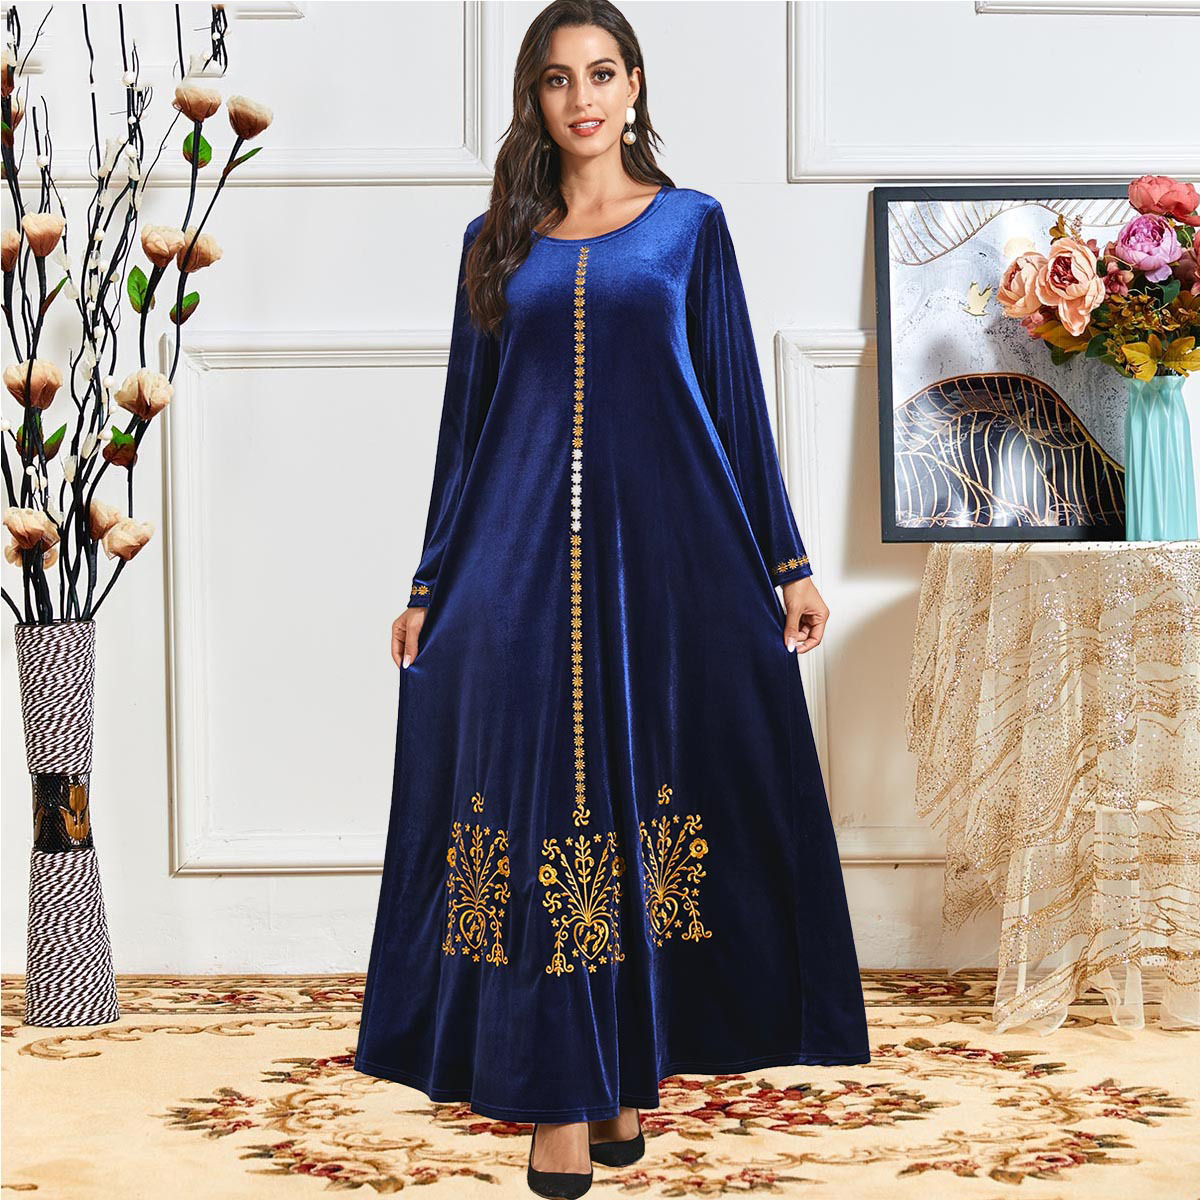 Elegant Velvet Muslim Dress Women Big Swing A line Maxi Dress Embroidery Jubah Long Robe Abaya